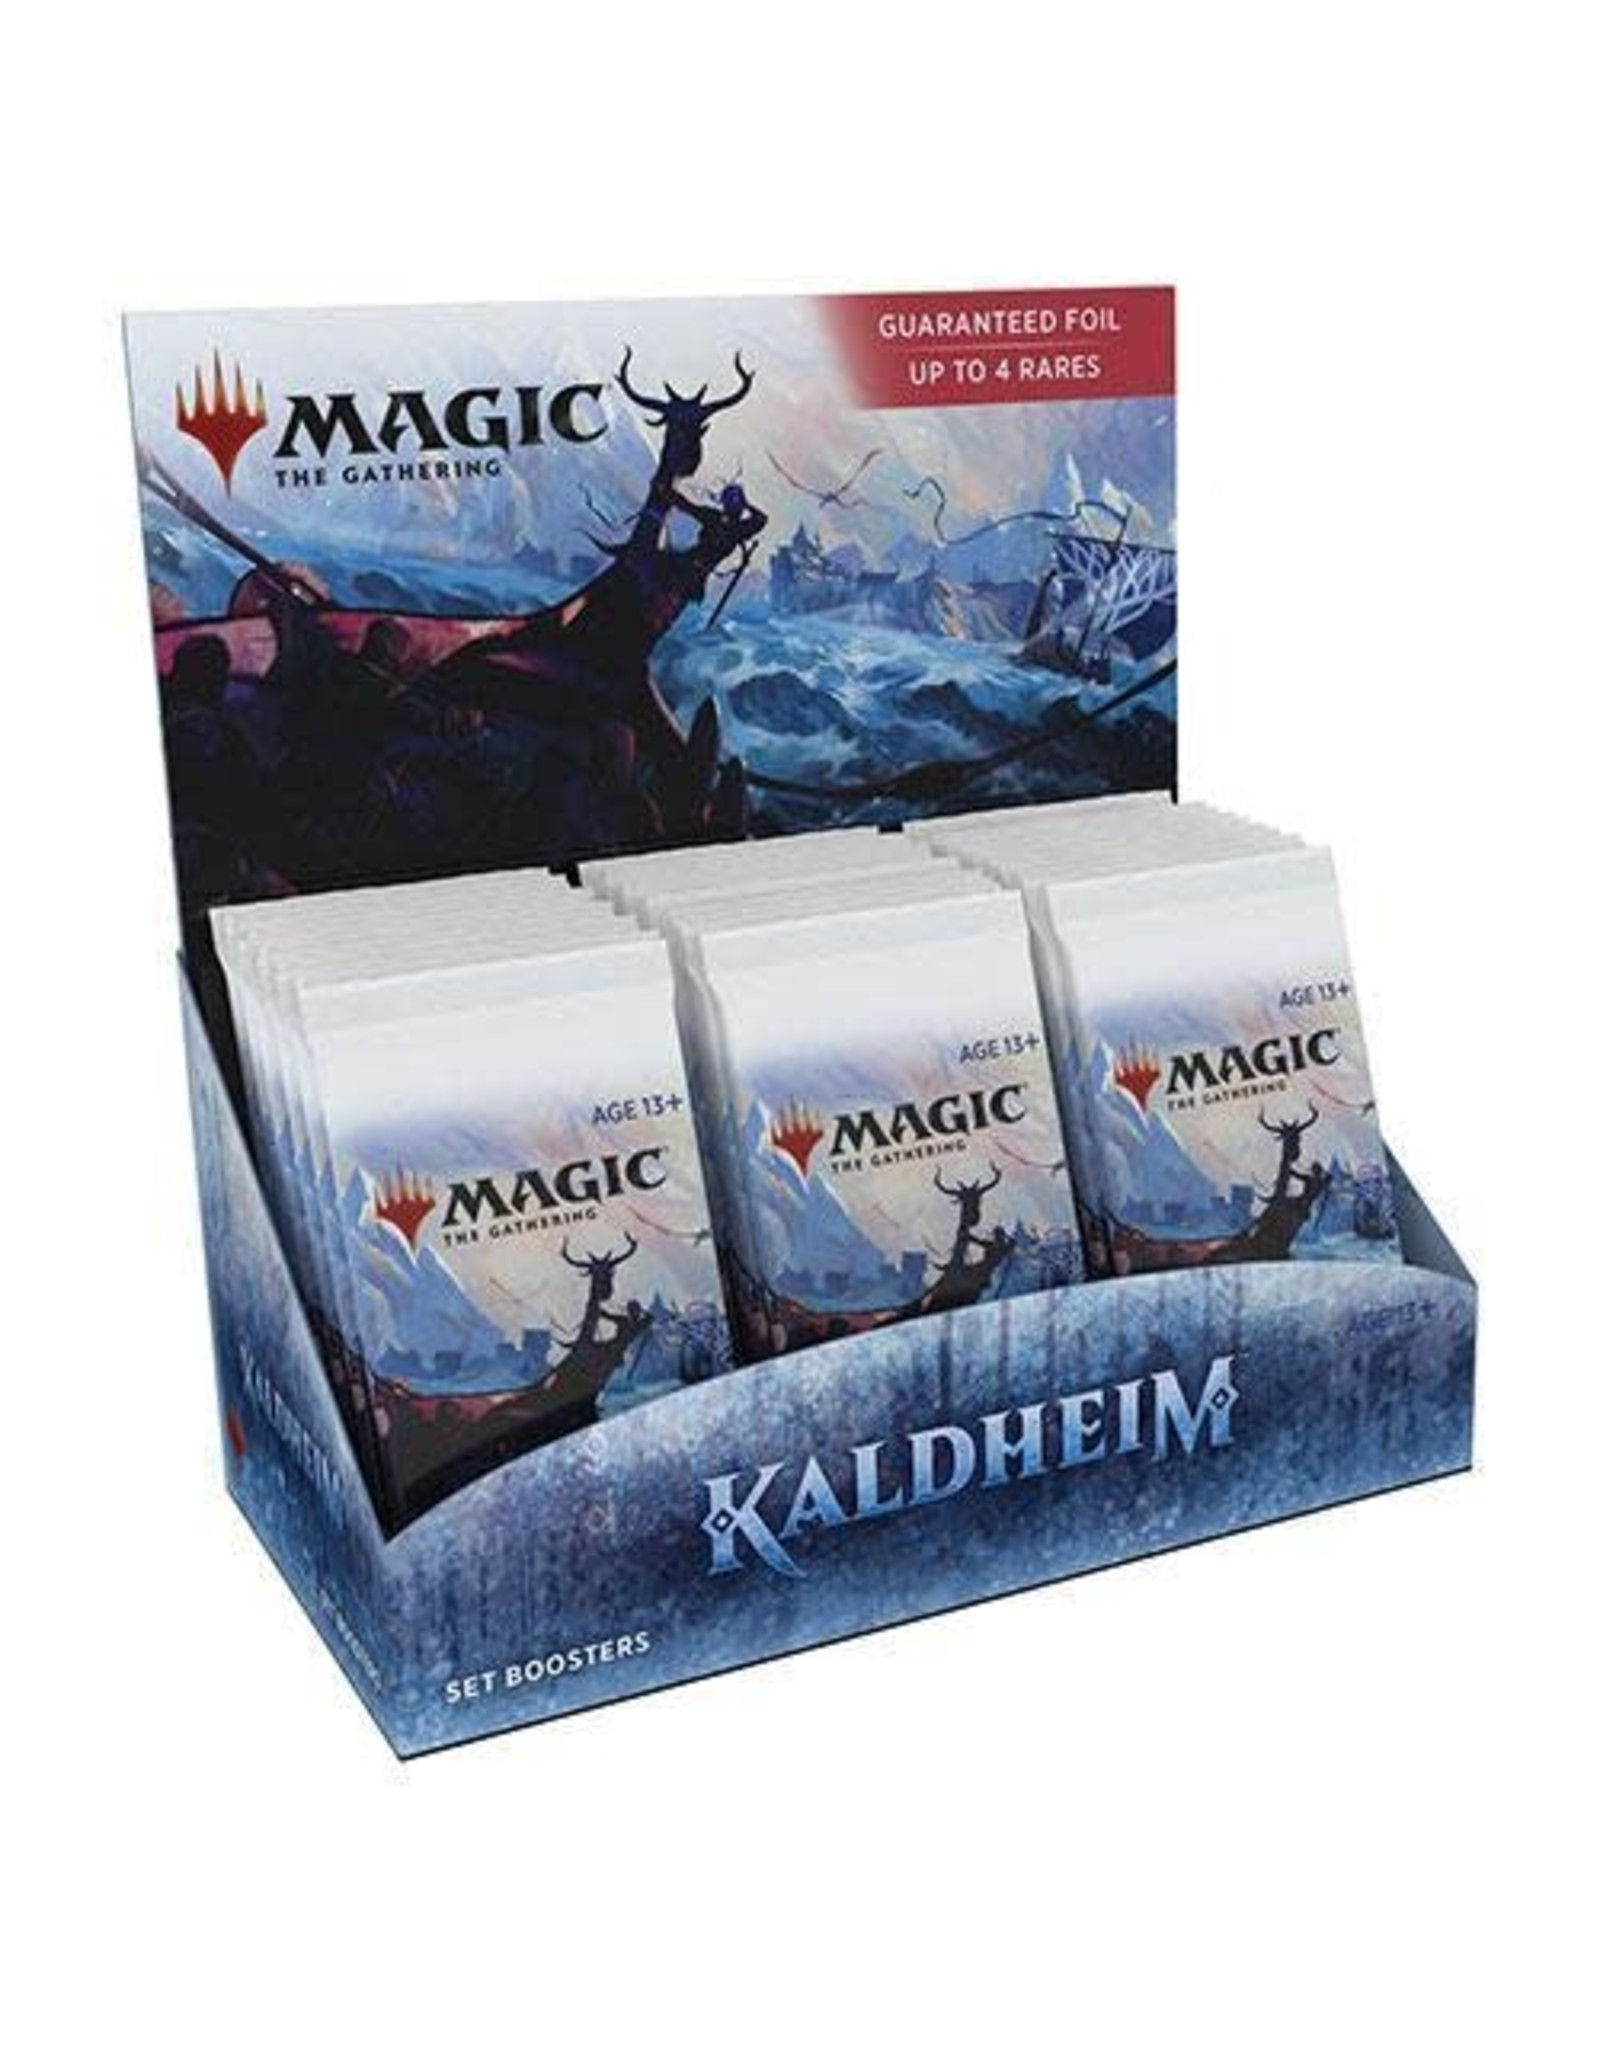 Wizards of the Coast Magic The Gathering: Kaldheim Set Booster Box